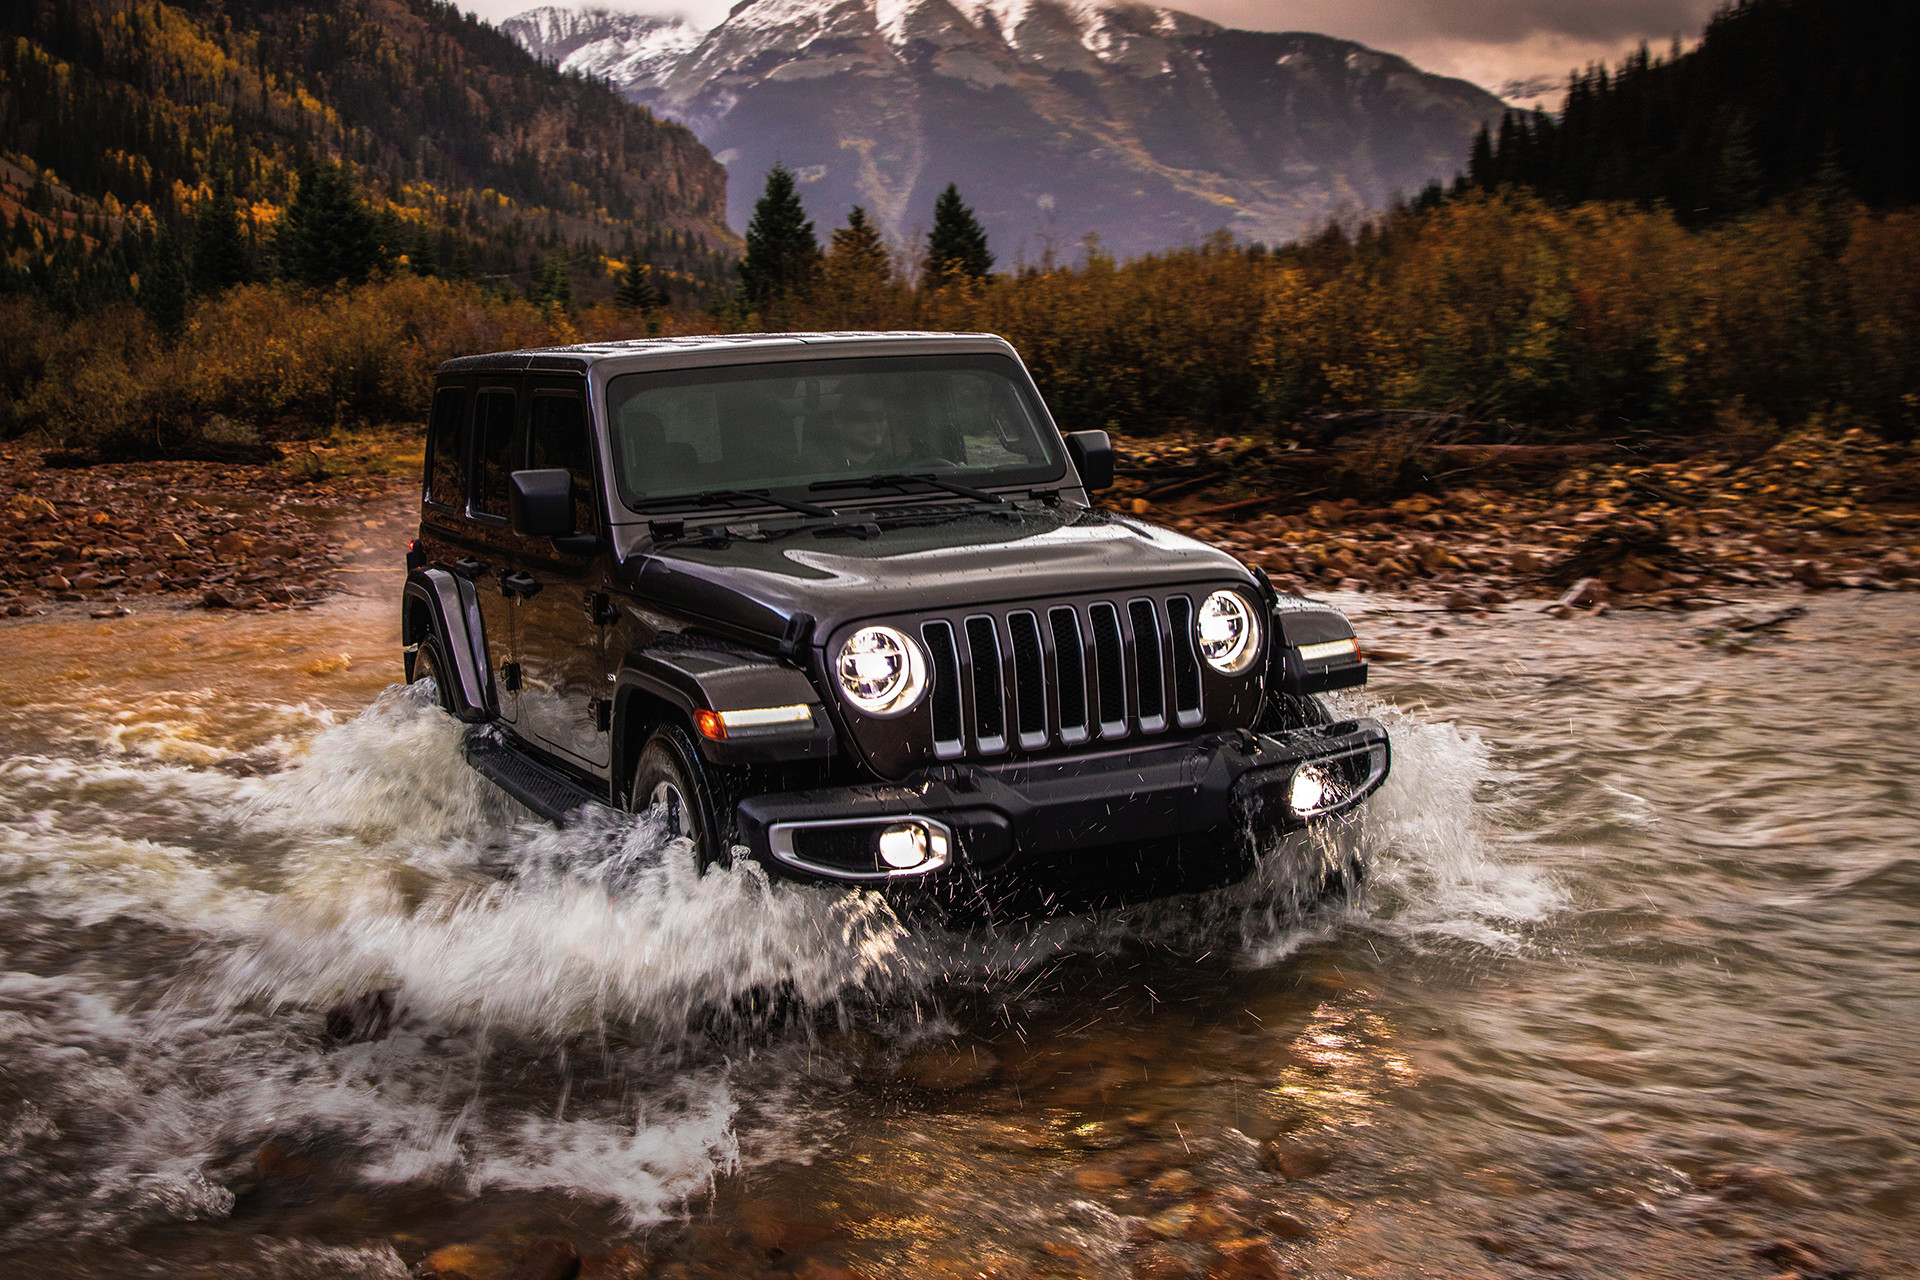 2019 Jeep Wrangler fording through shallow water, shown in black